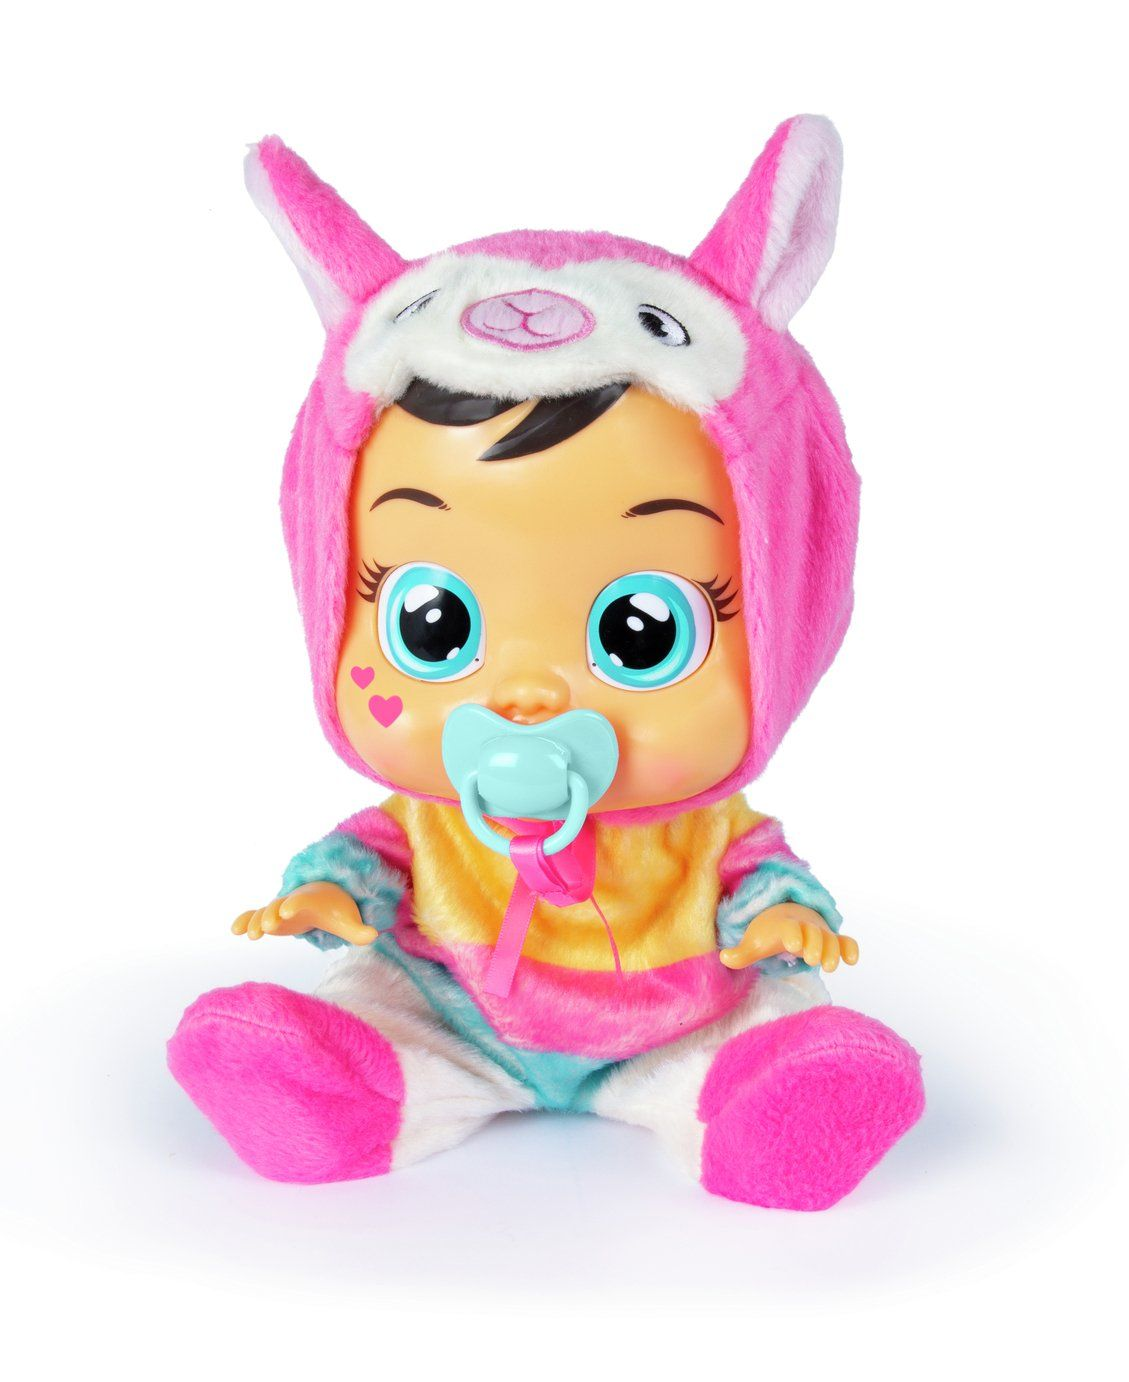 Cry Babies Lena In 2020 Christmas Toys For Girls Baby Dolls Cry Baby